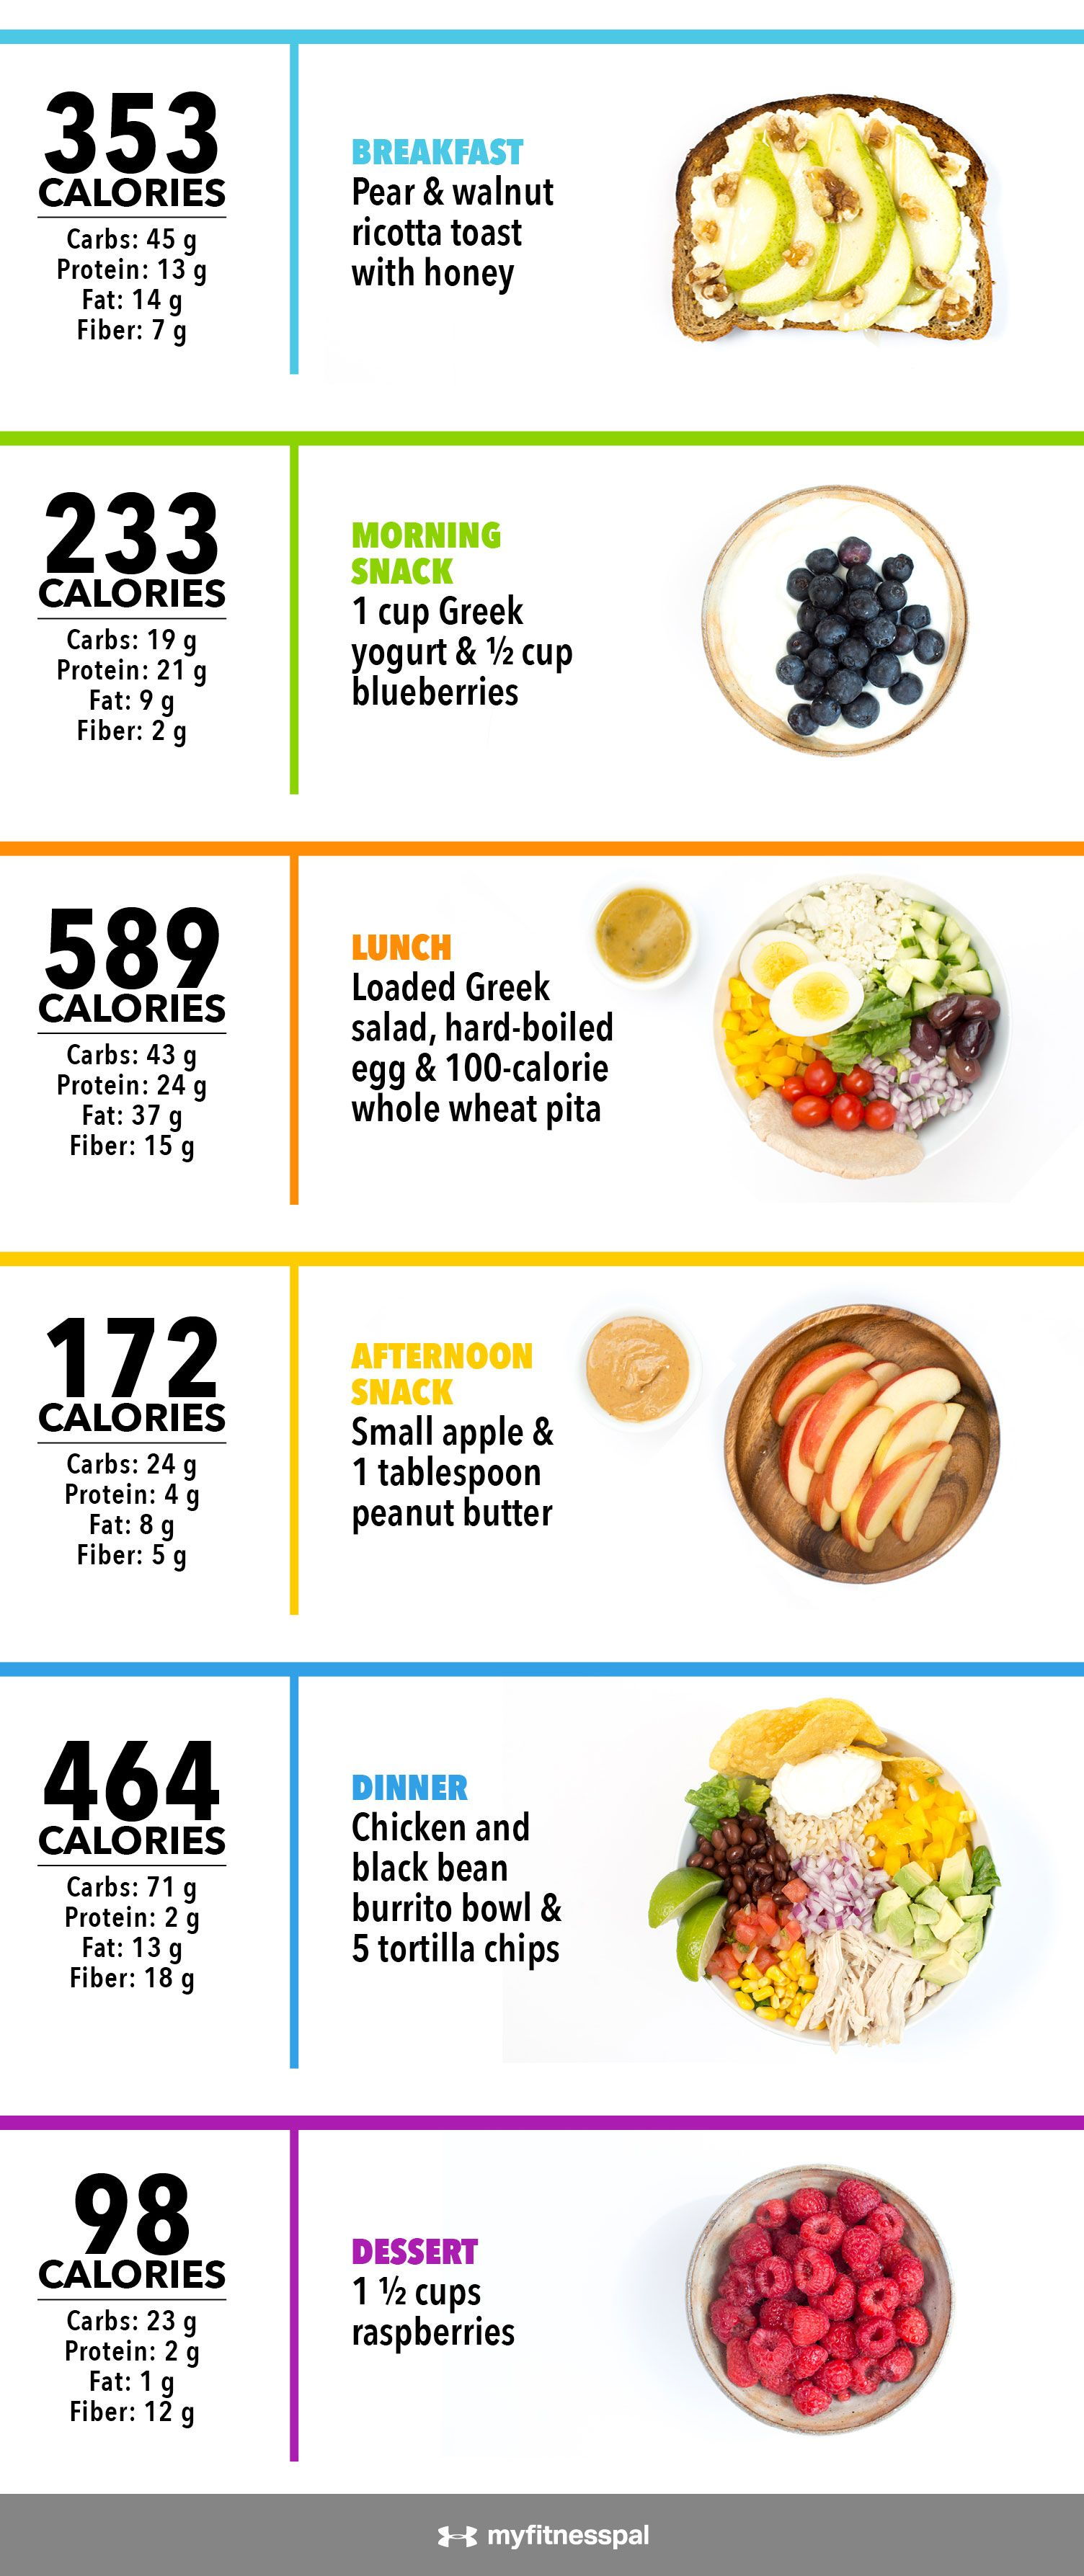 2000 calorie liquid diet plan